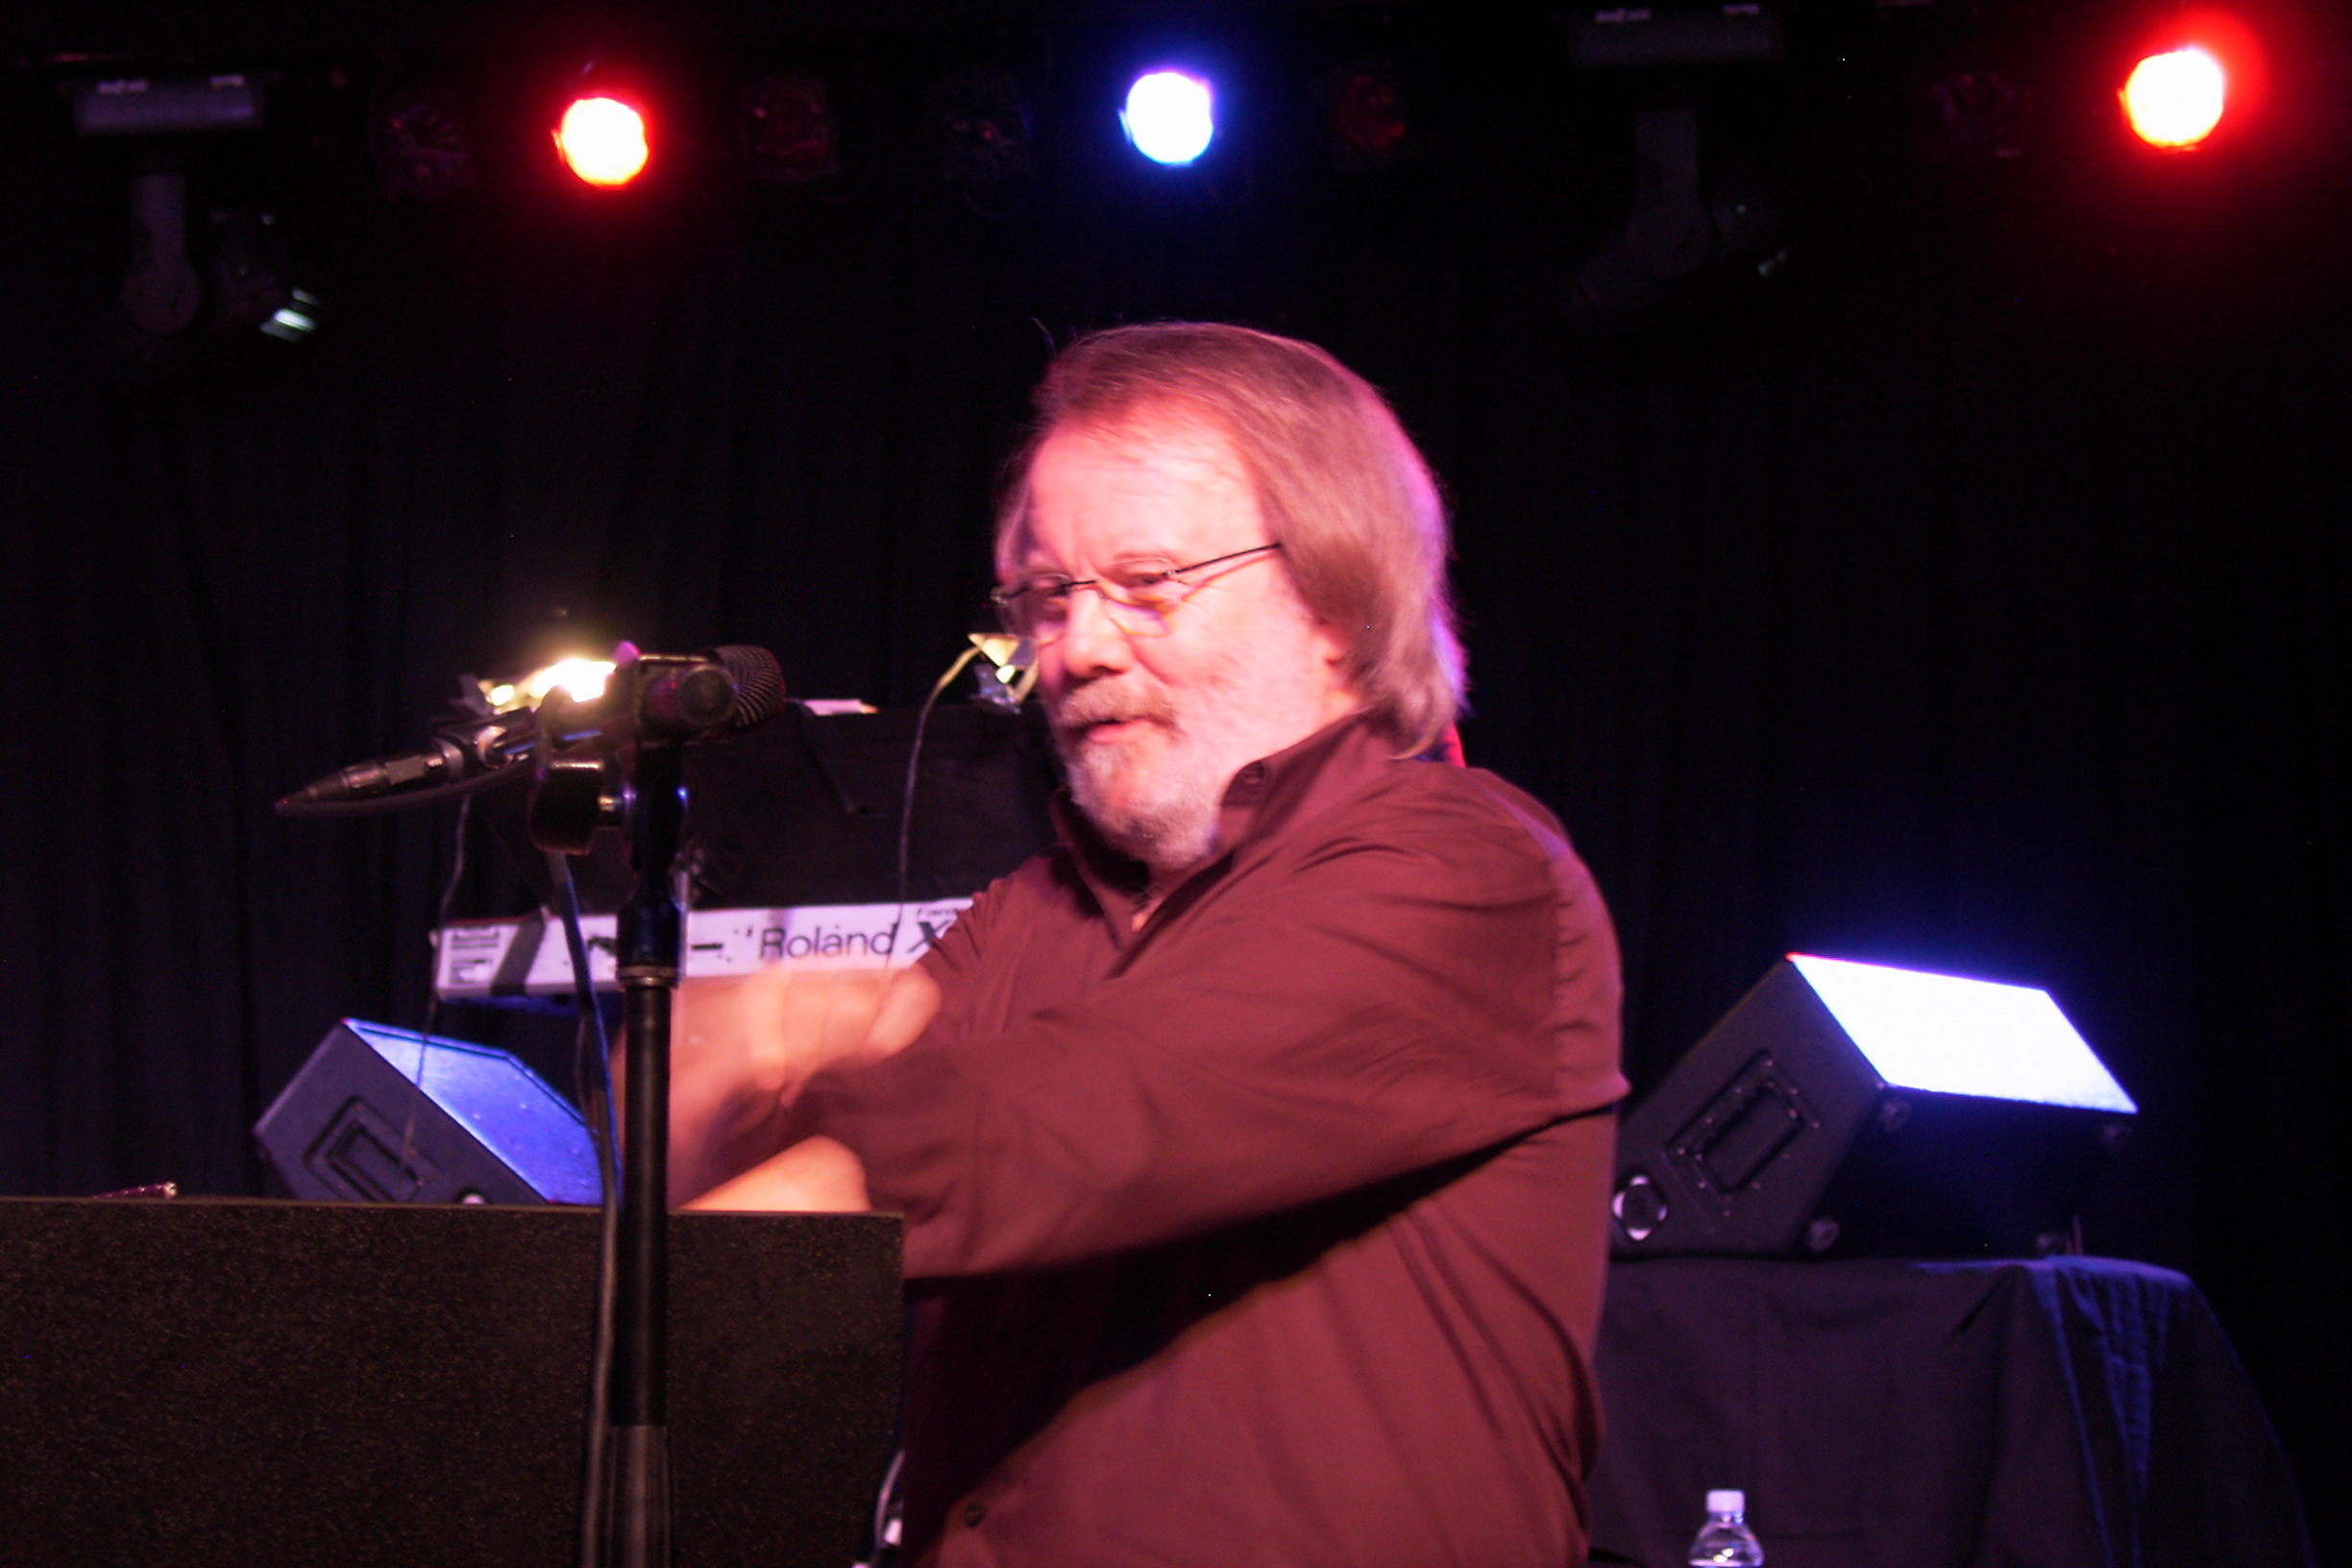 Depiction of Benny Andersson